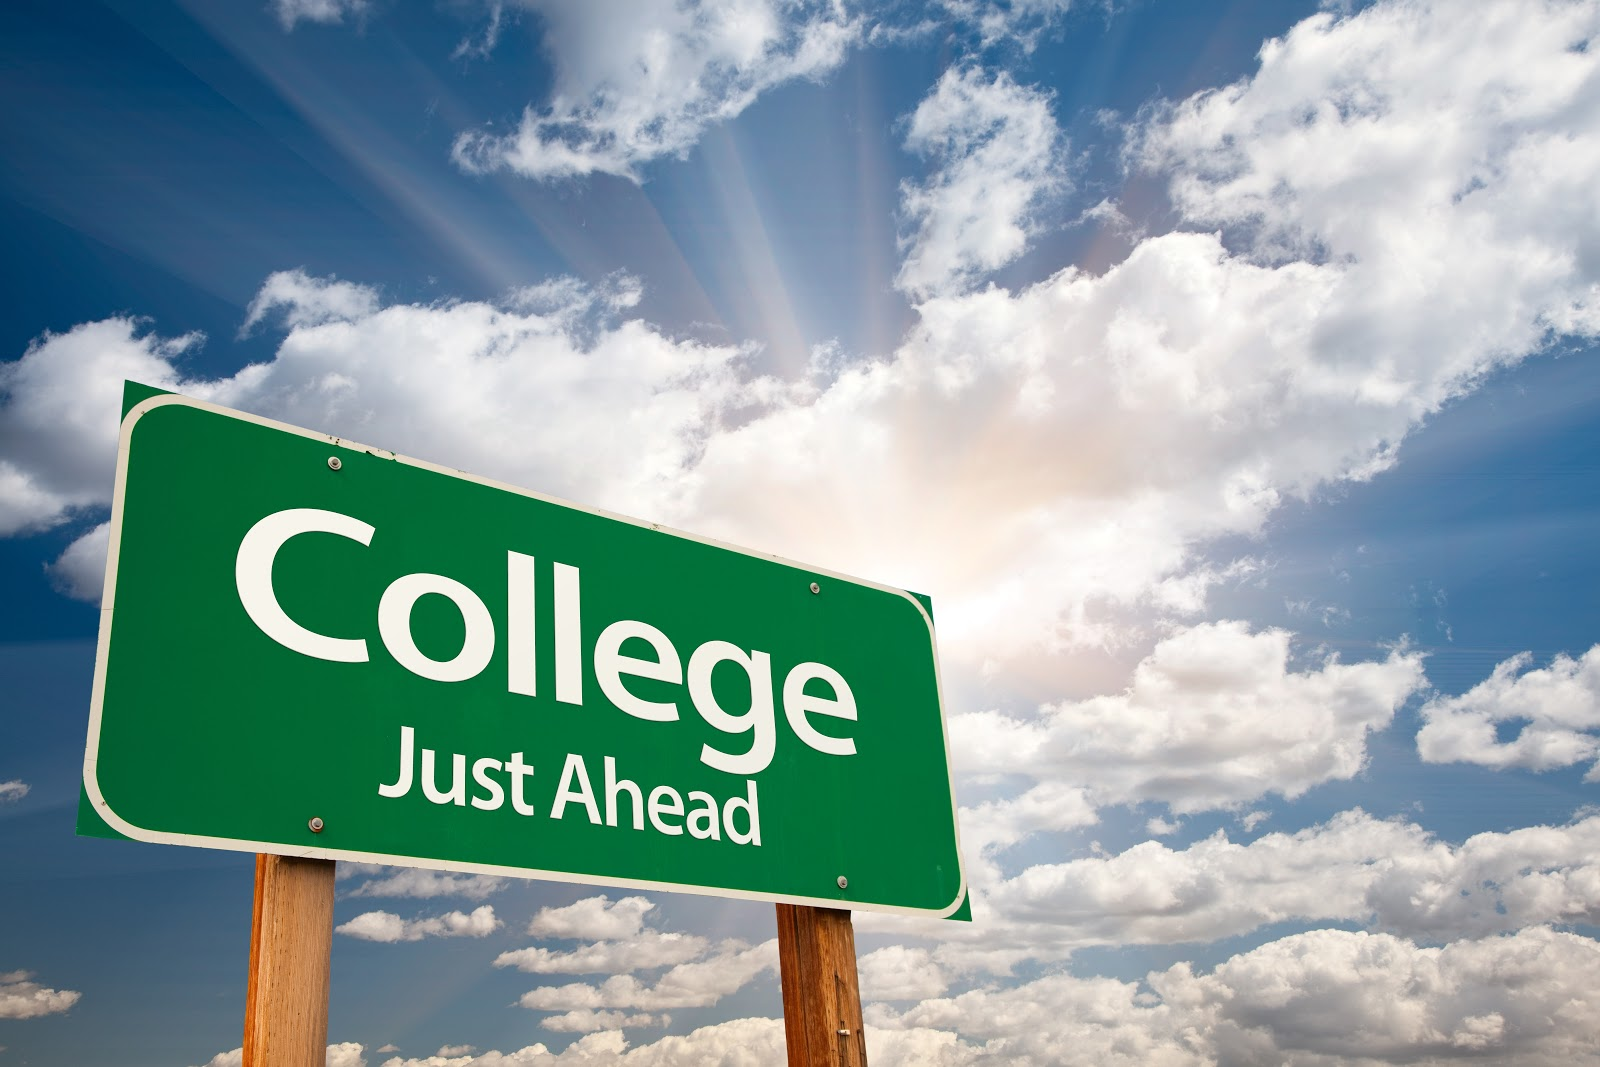 """Road sign, street sign that says """"college just ahead"""""""